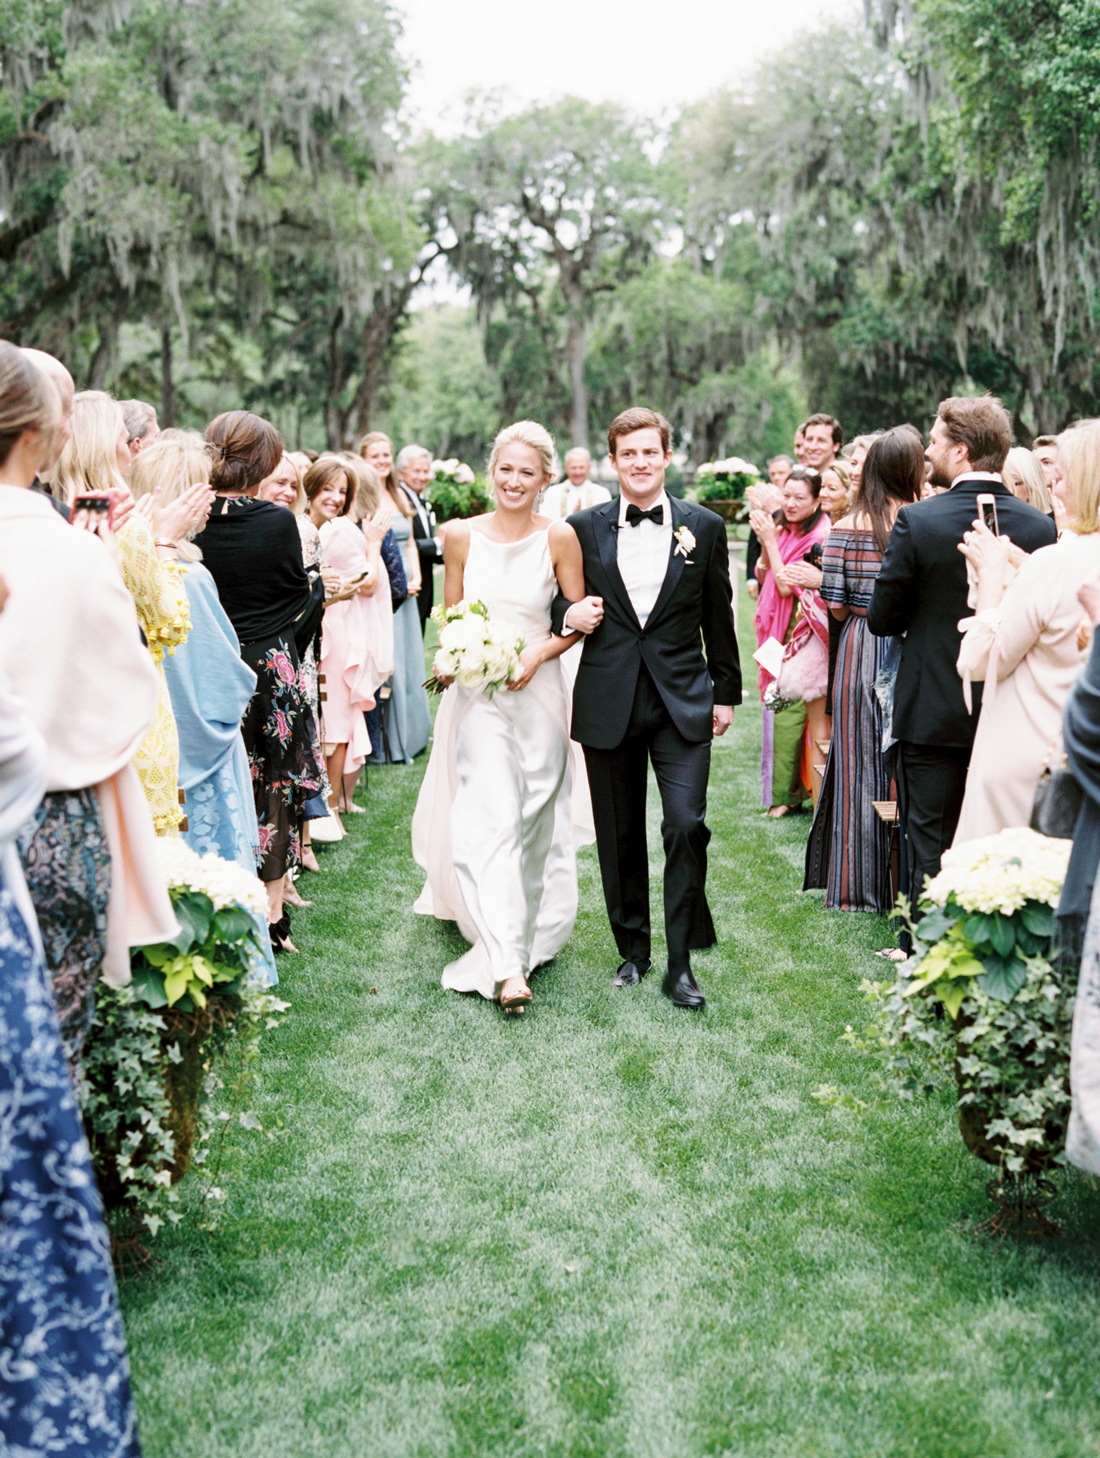 bride and groom walk down aisle during wedding recessional